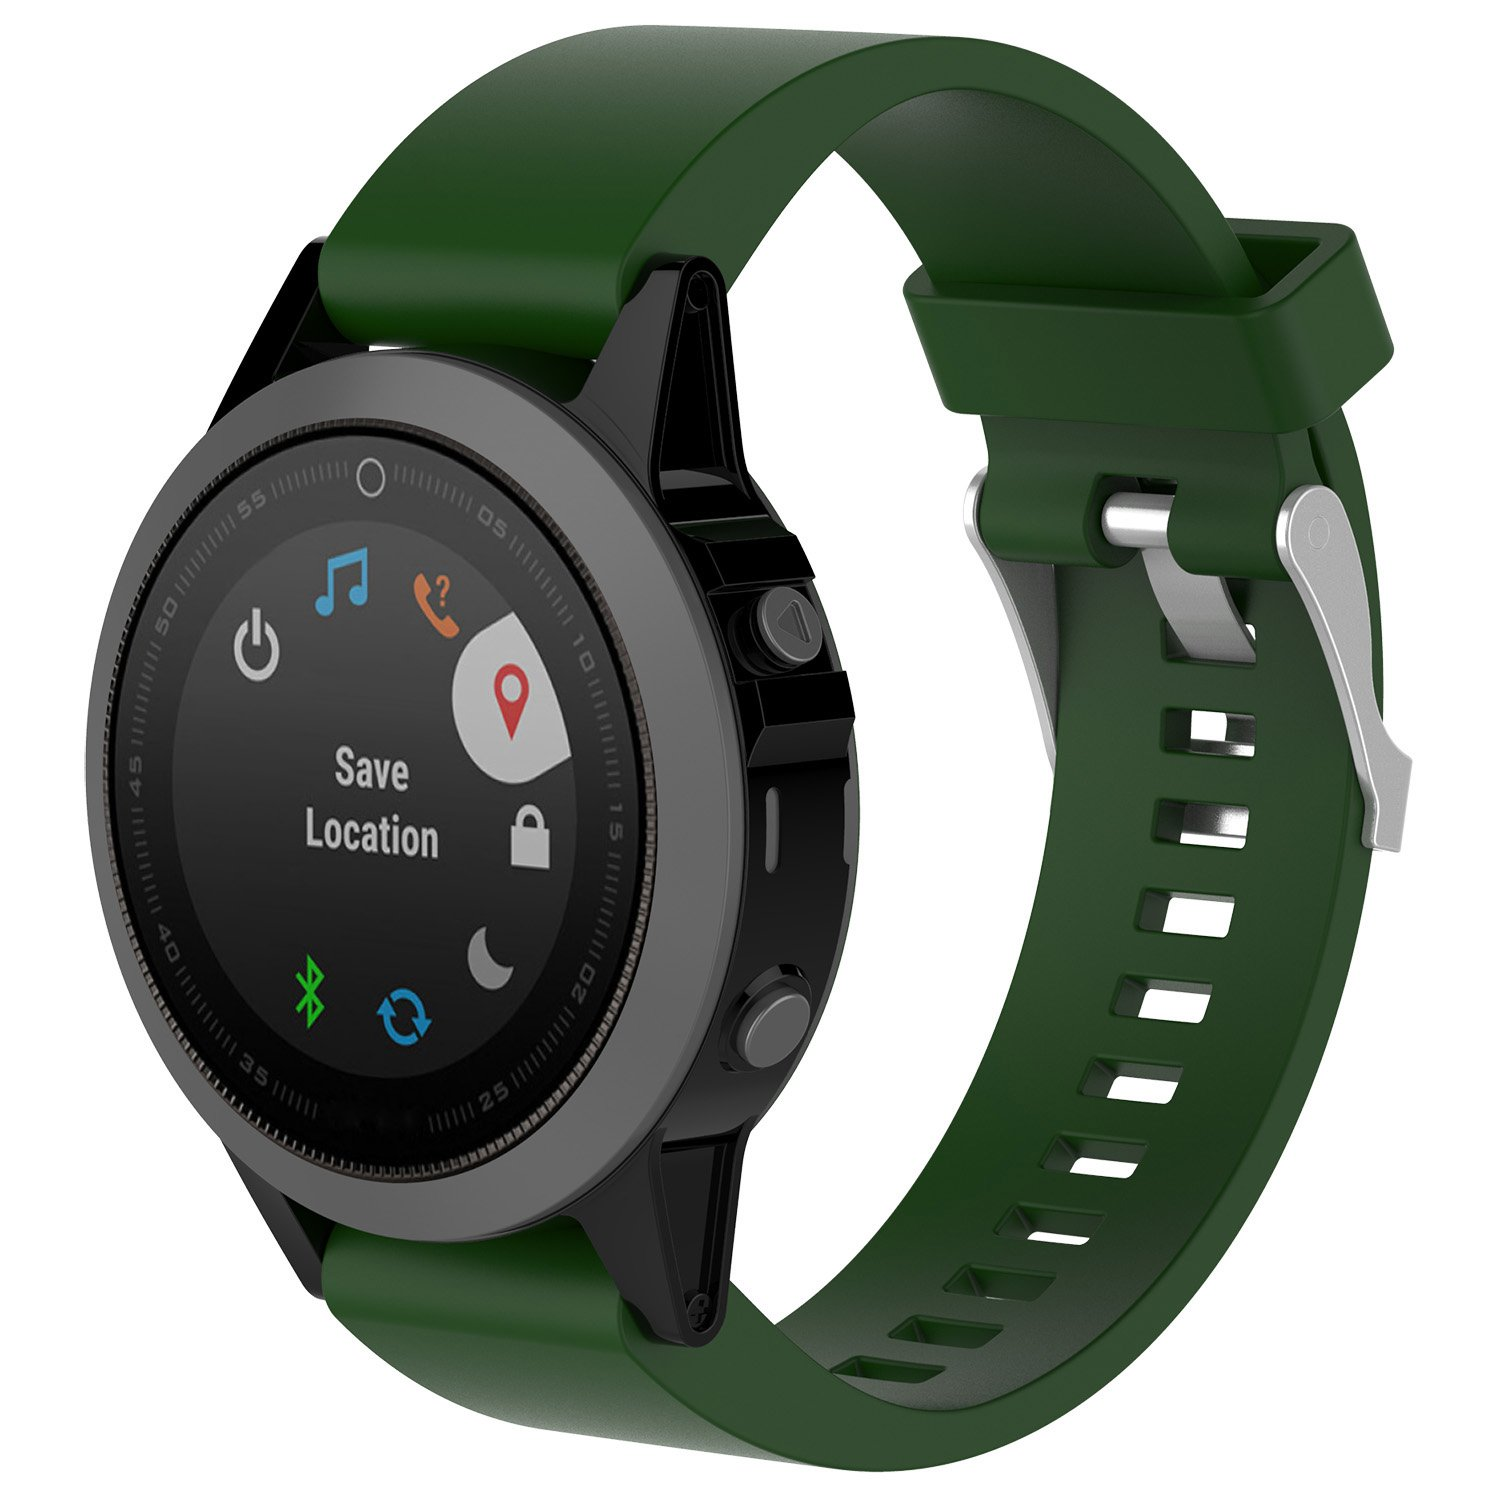 XIHAMA for Garmin Fenix 5X Silicone Band, 26mm Silicagel QuickFit Replacement Band Strap Sport Strap Band Fitness Wristband Barcelet with Holes Breathable for Garmin Fenix 5X GPS (Army-green)